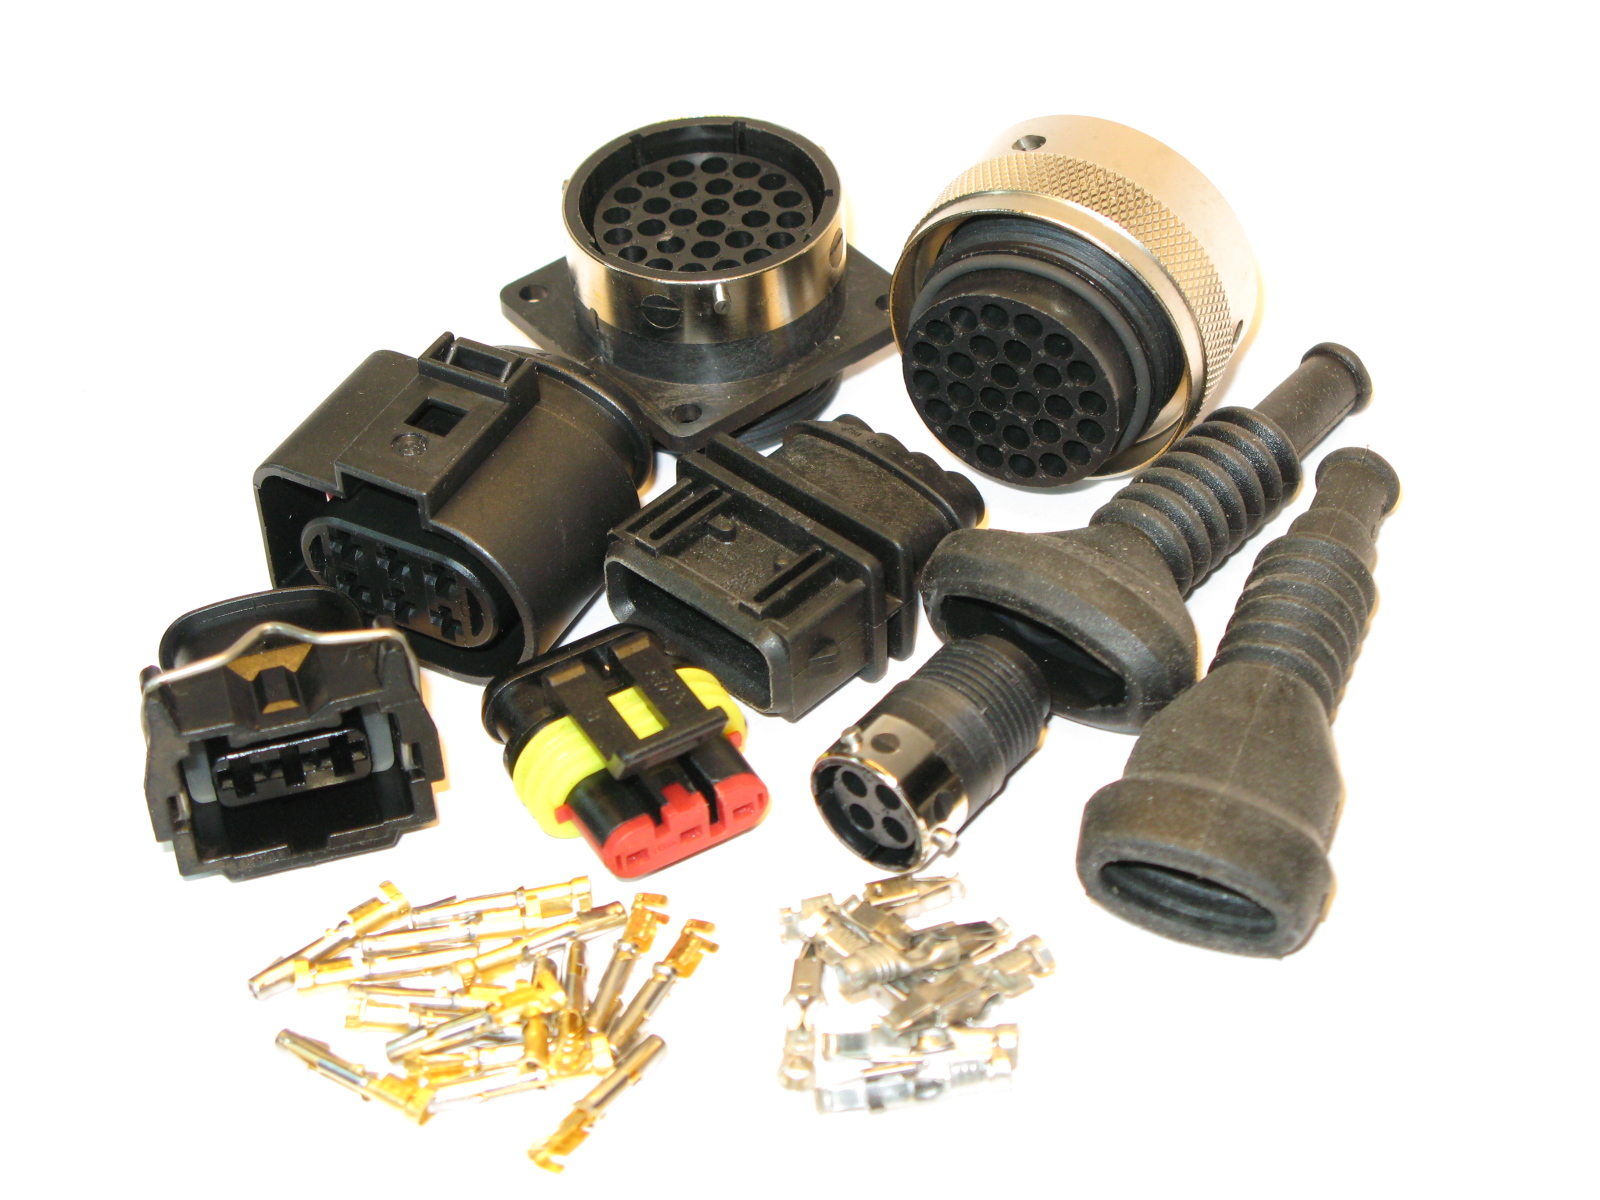 sle plugs and connectors racecar electronics design planning installation autosport